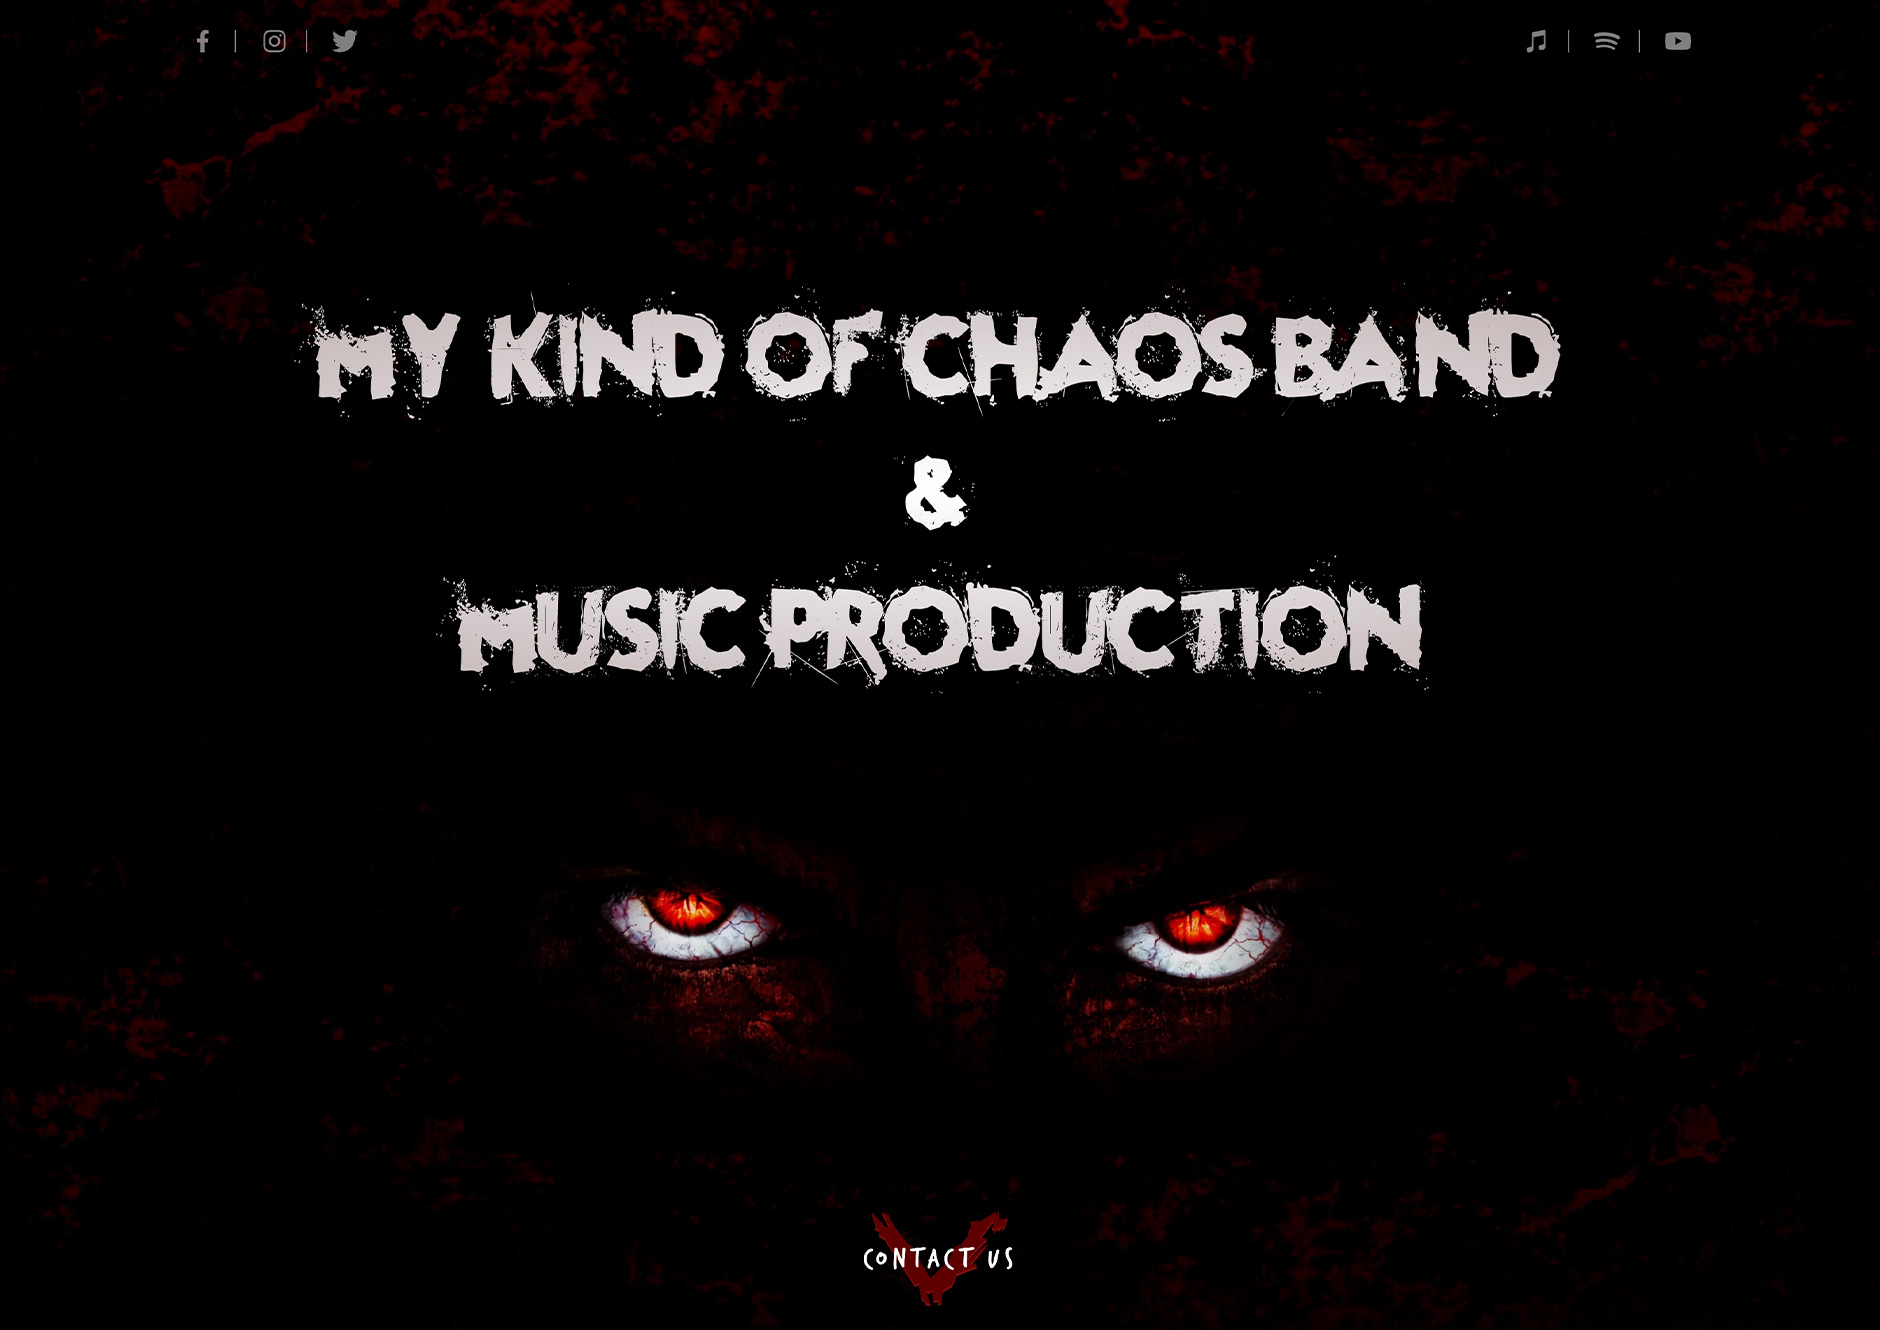 My Kind Of Chaos